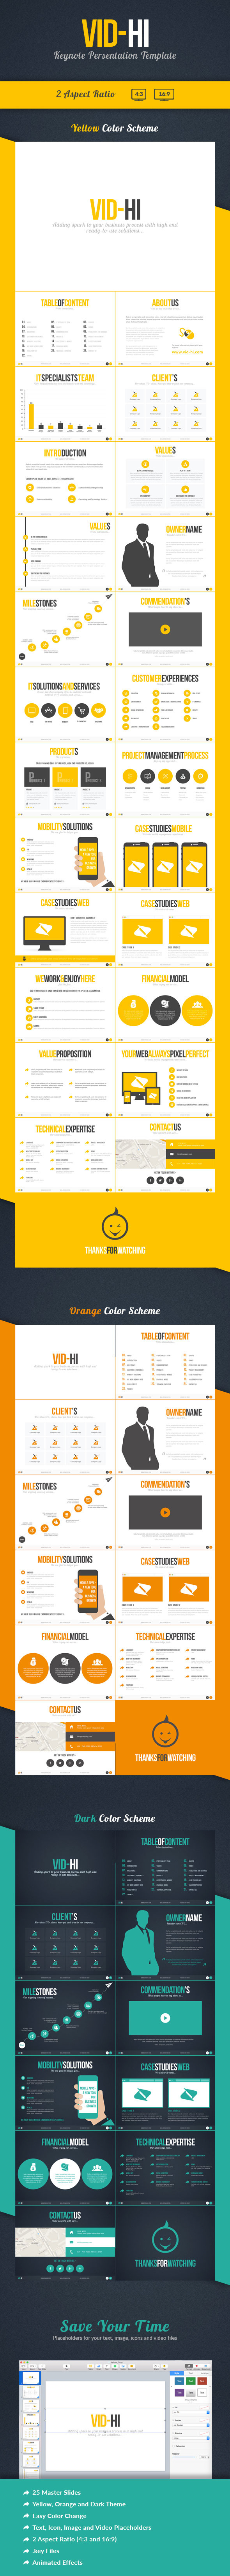 GraphicRiver VID-HI Keynote Presentation Template 10782512